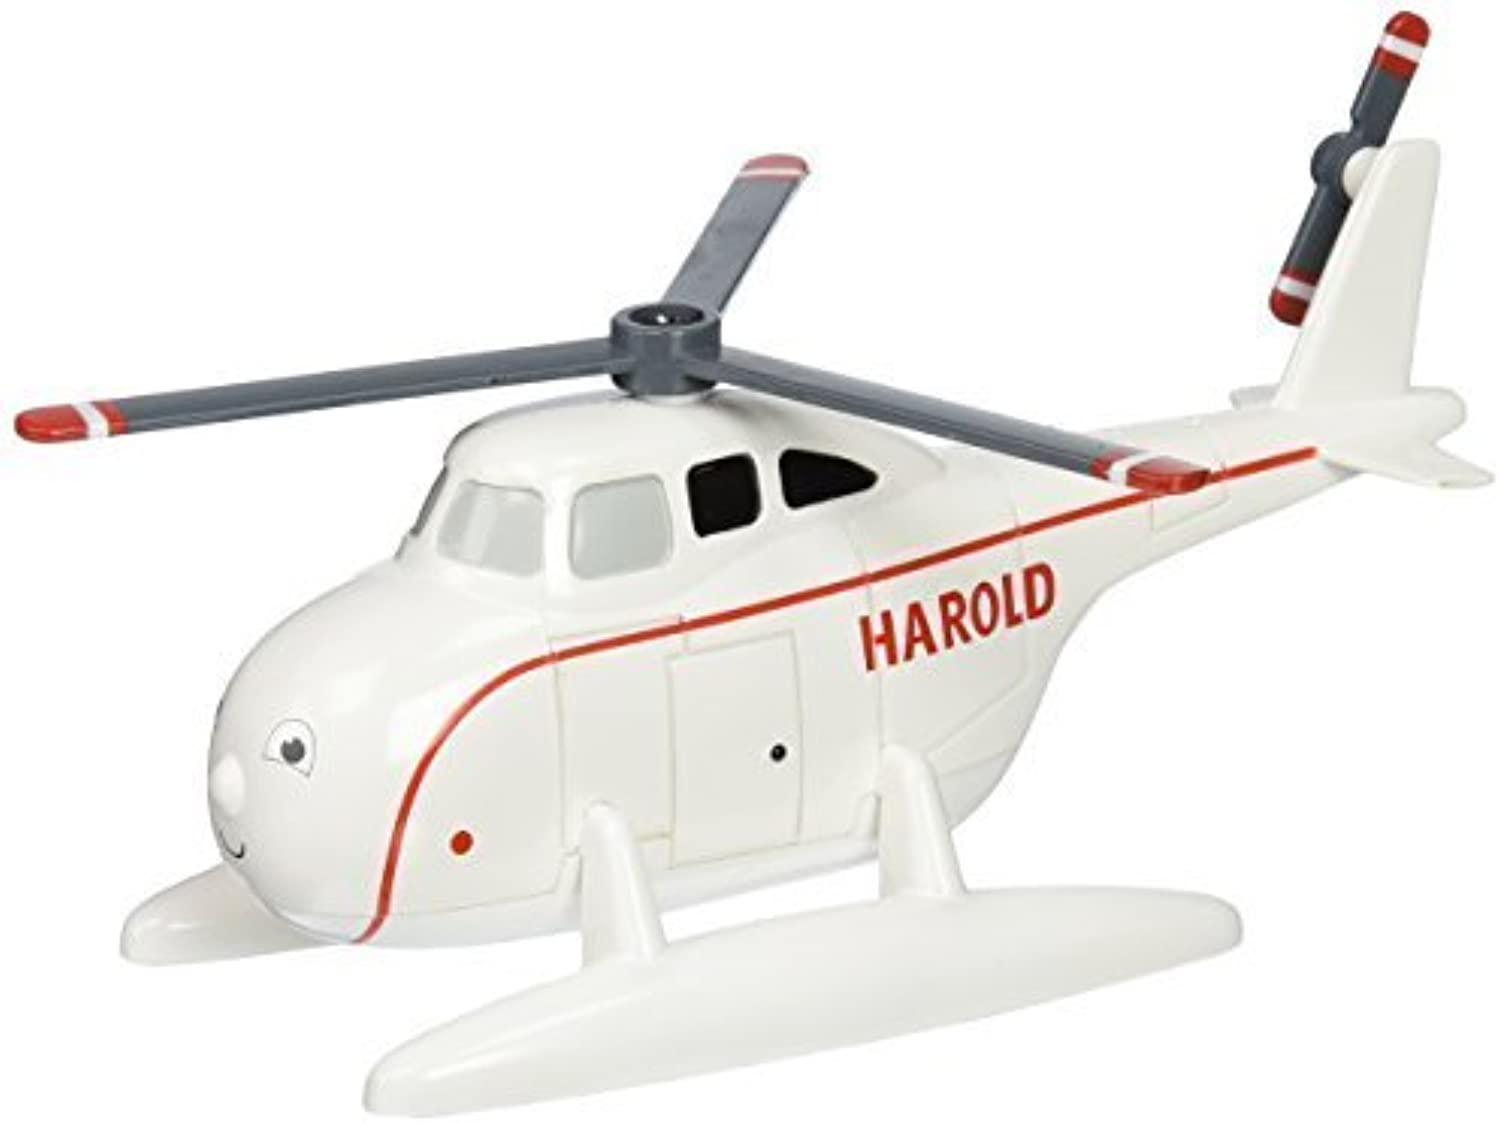 las mejores marcas venden barato Bachmann Trains Thomas And Friends Harold The Helicopter Helicopter Helicopter by Bachmann Trains  precios mas baratos